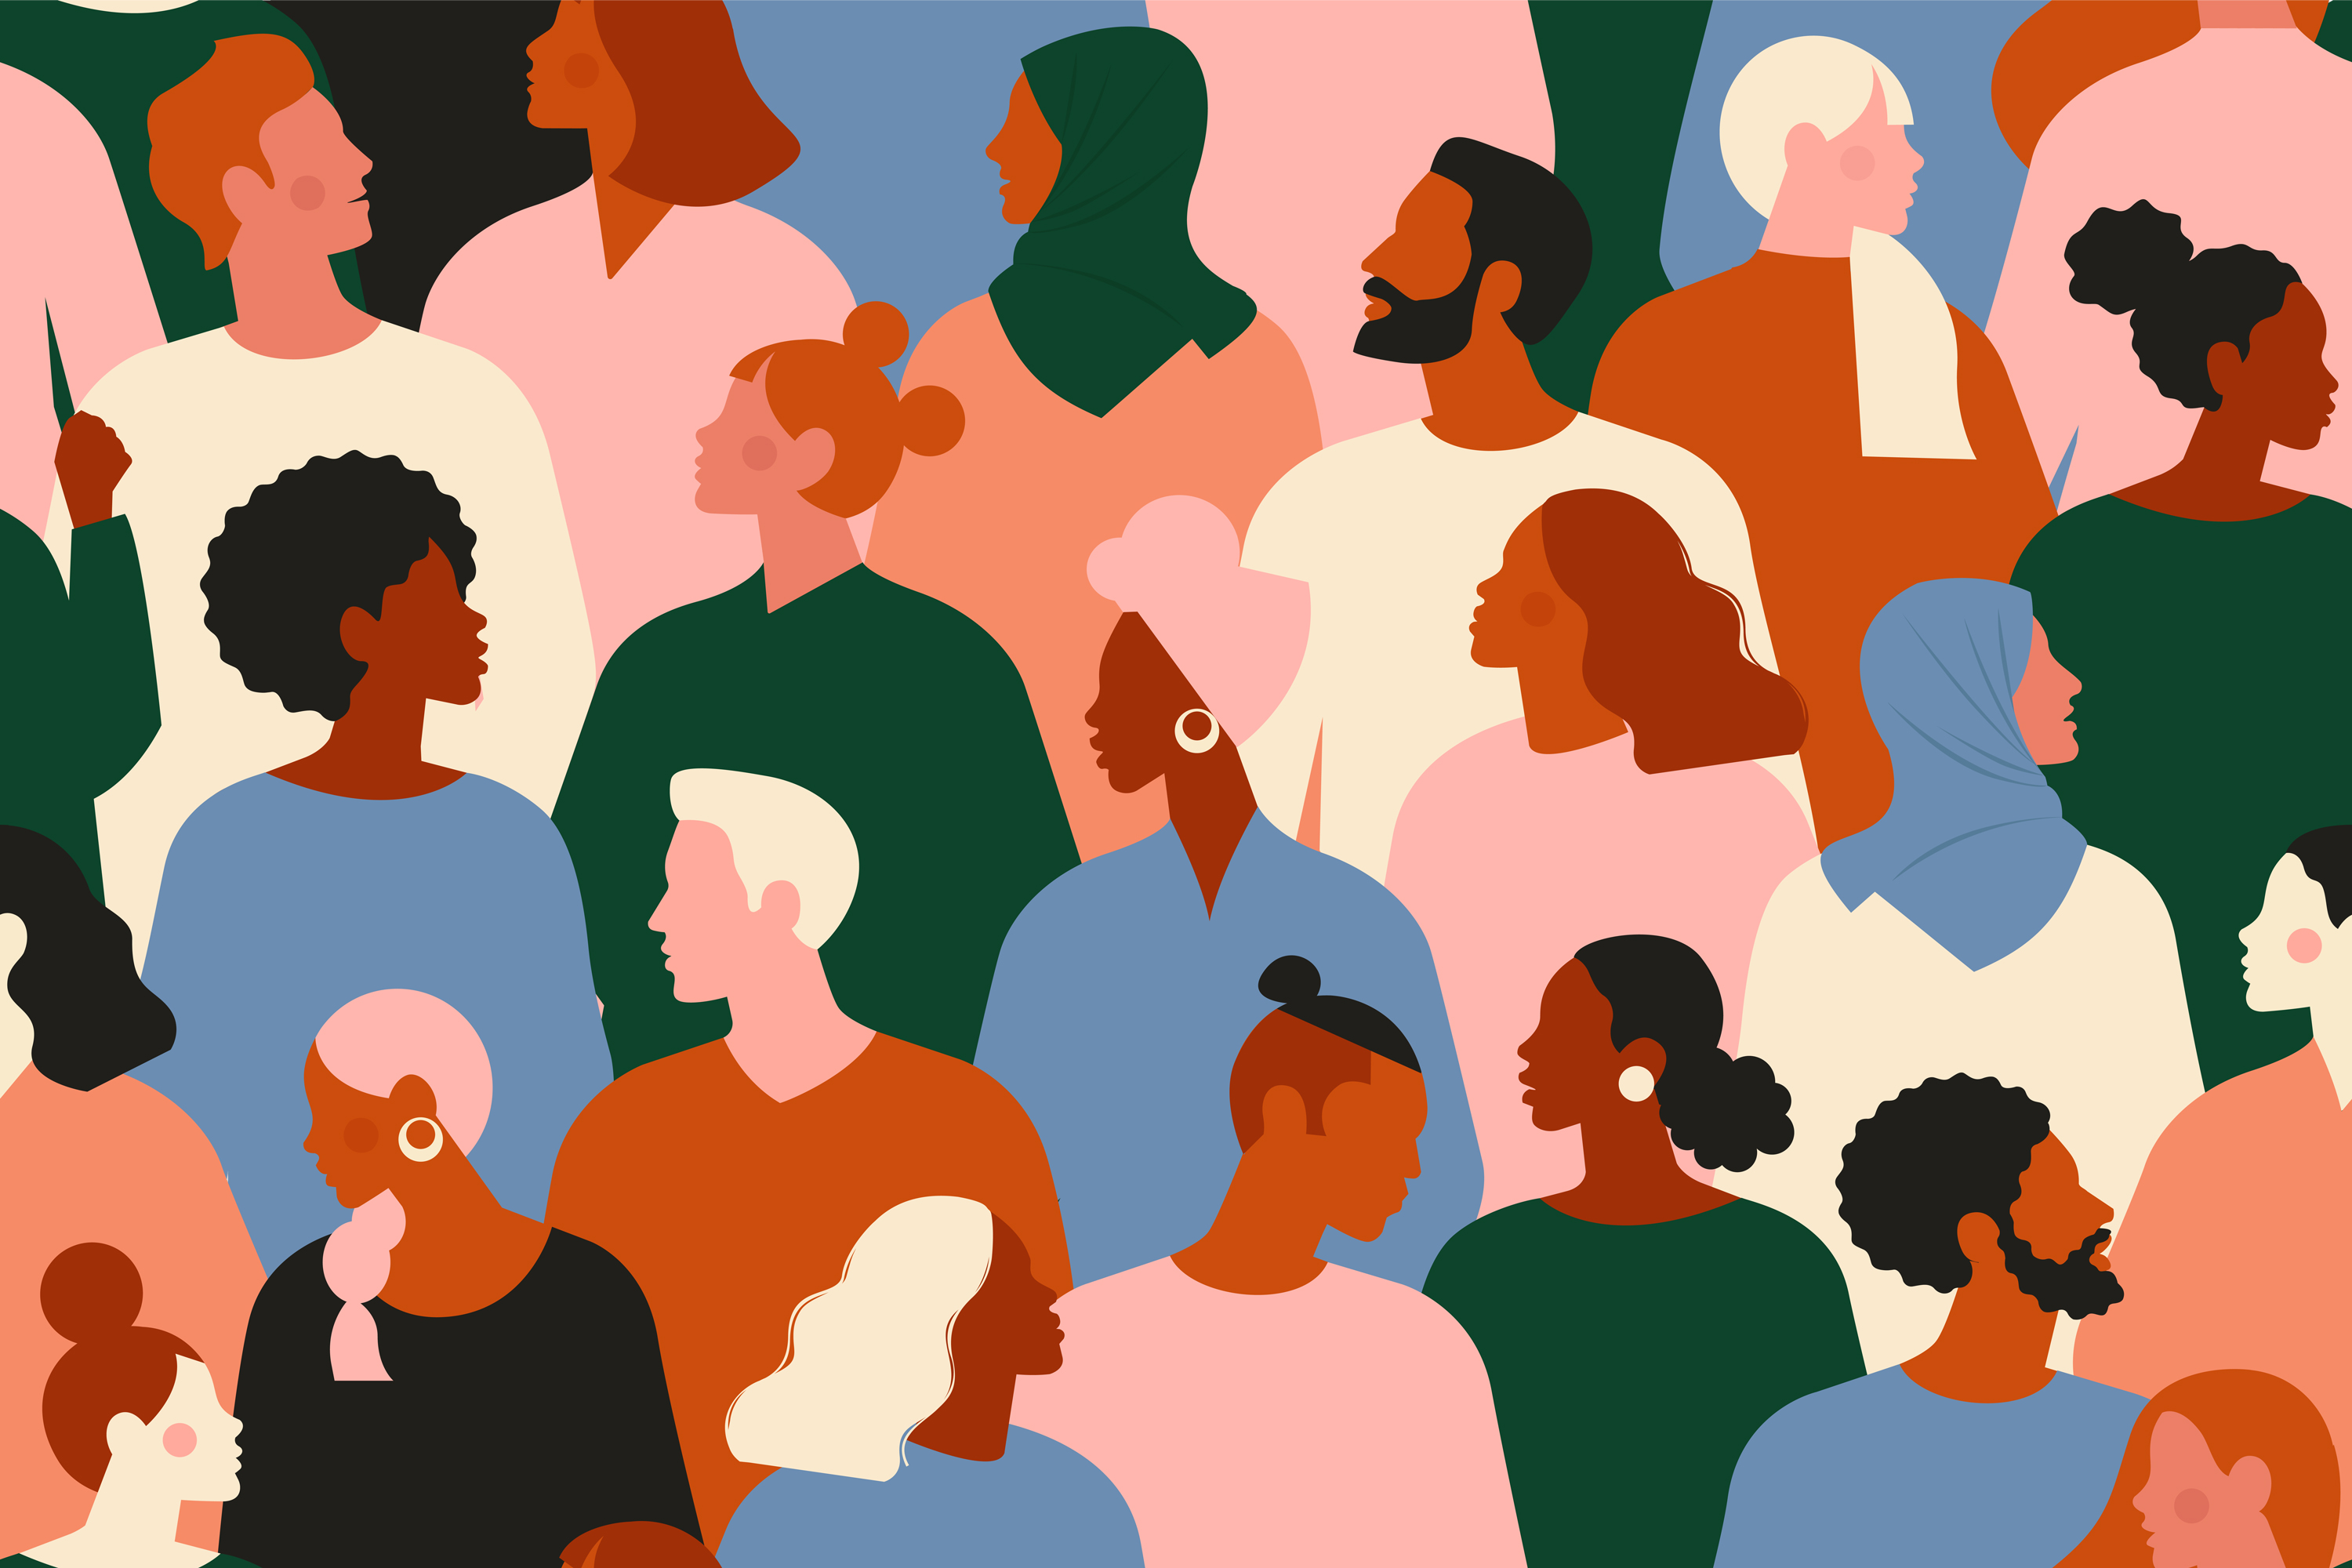 How marketers can use inclusivity to transcend today's new normal